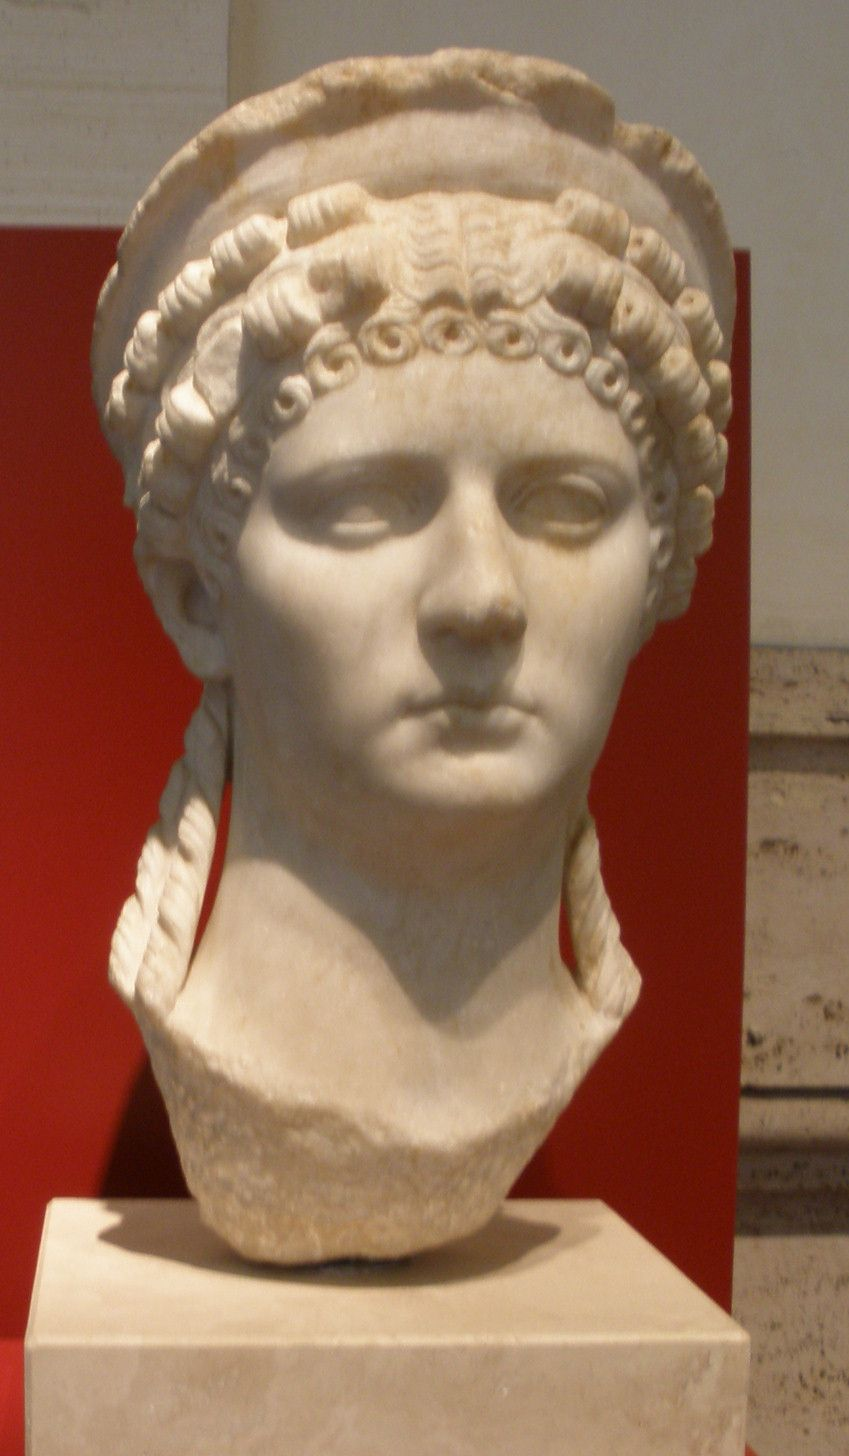 Poppaea Sabina was a legendarily schemer who worked her way to Emperor Nero's mistress and then wife and empress, after convincing him to divorce (and later murder) his wife Octavia. Nero and Poppaea's only child, a daughter, died very young. Legend has it that during a subsequent pregnancy, Nero kicked Poppaea in the abdomen, causing her death, although she may have died from complications surrounding the pregnancy or childbirth. Photo by TcfkaPanairjdde.